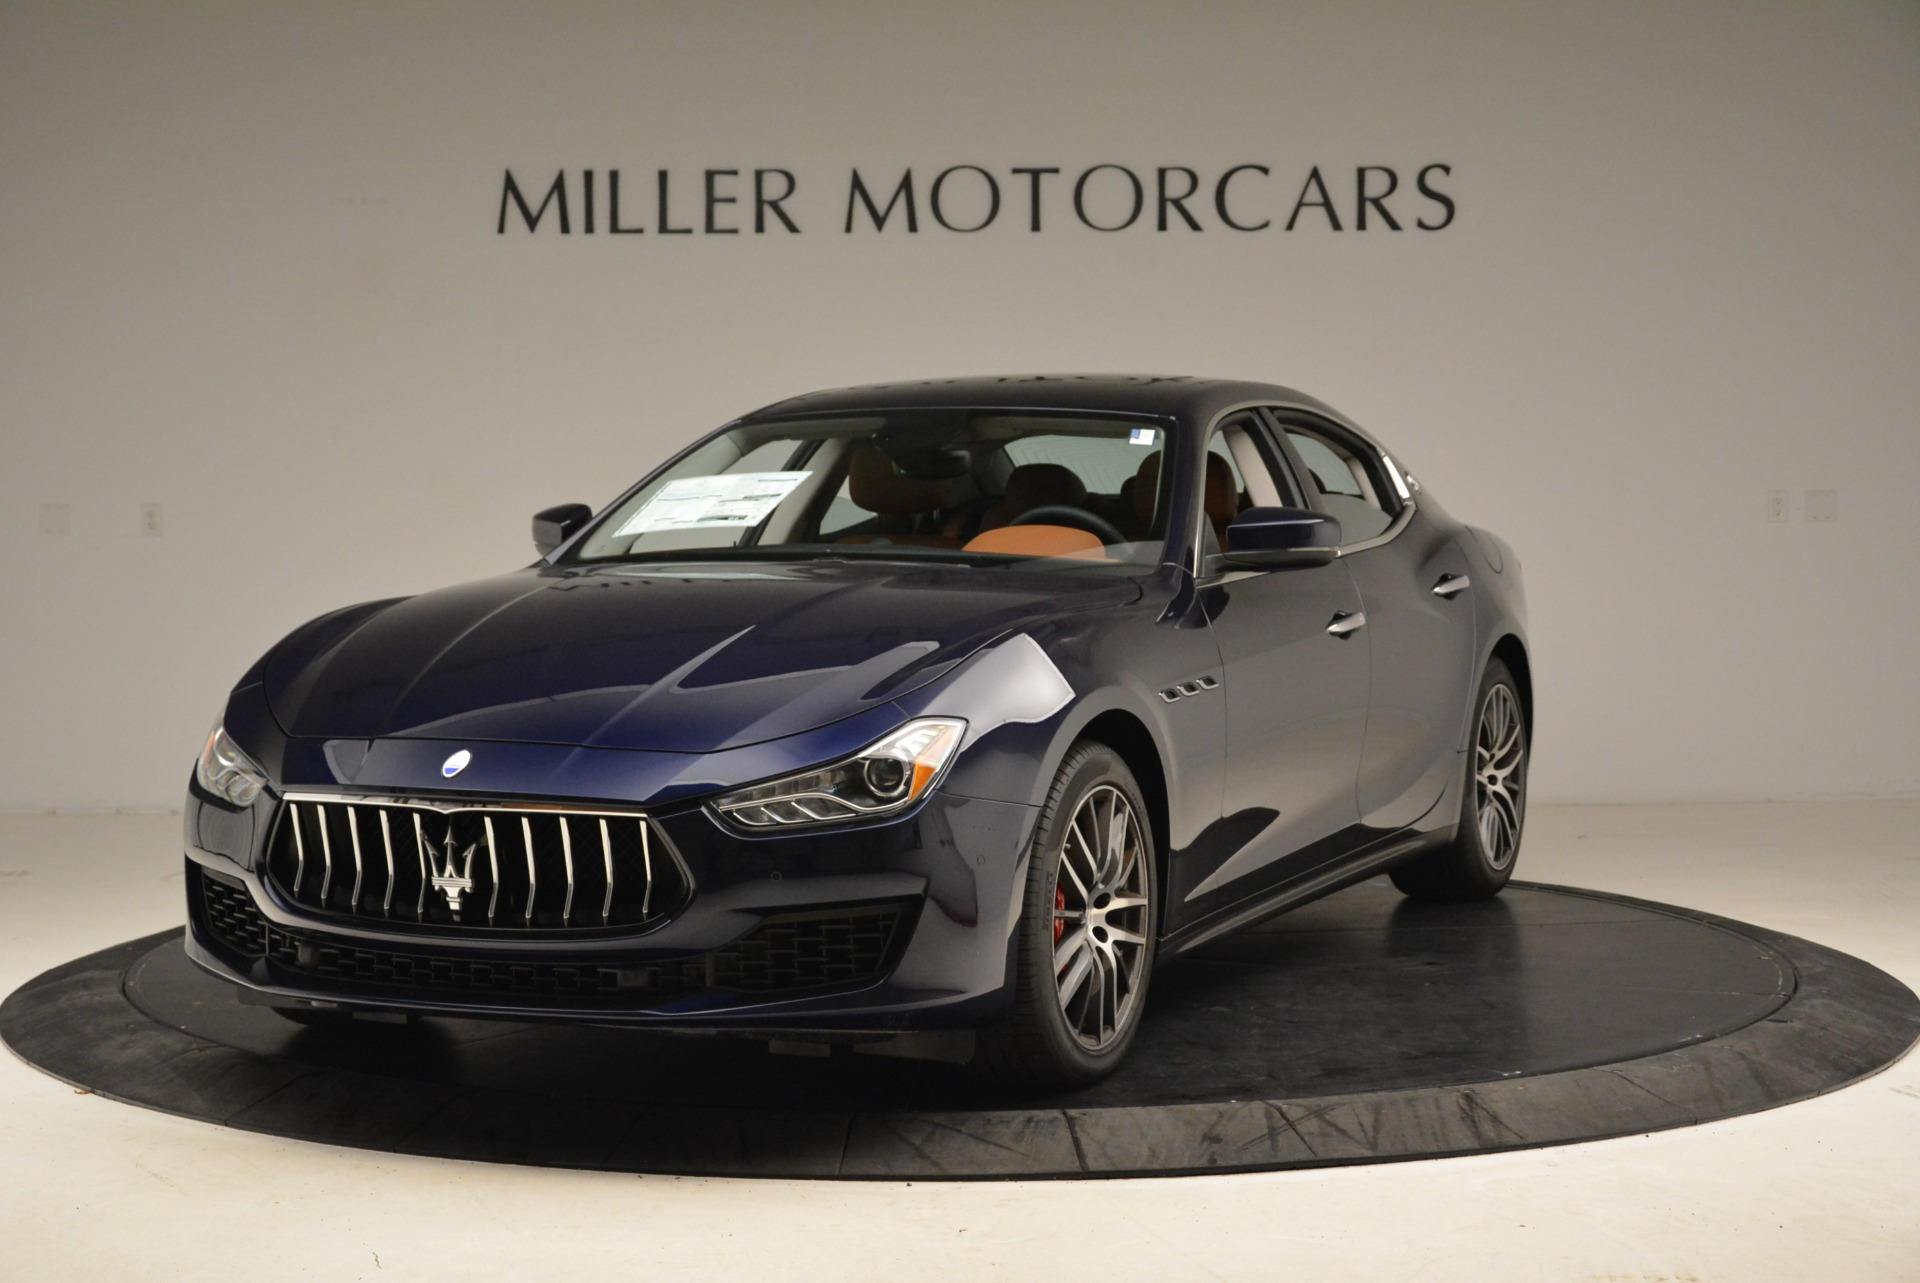 New 2019 Maserati Ghibli S Q4 For Sale In Westport, CT 3016_main